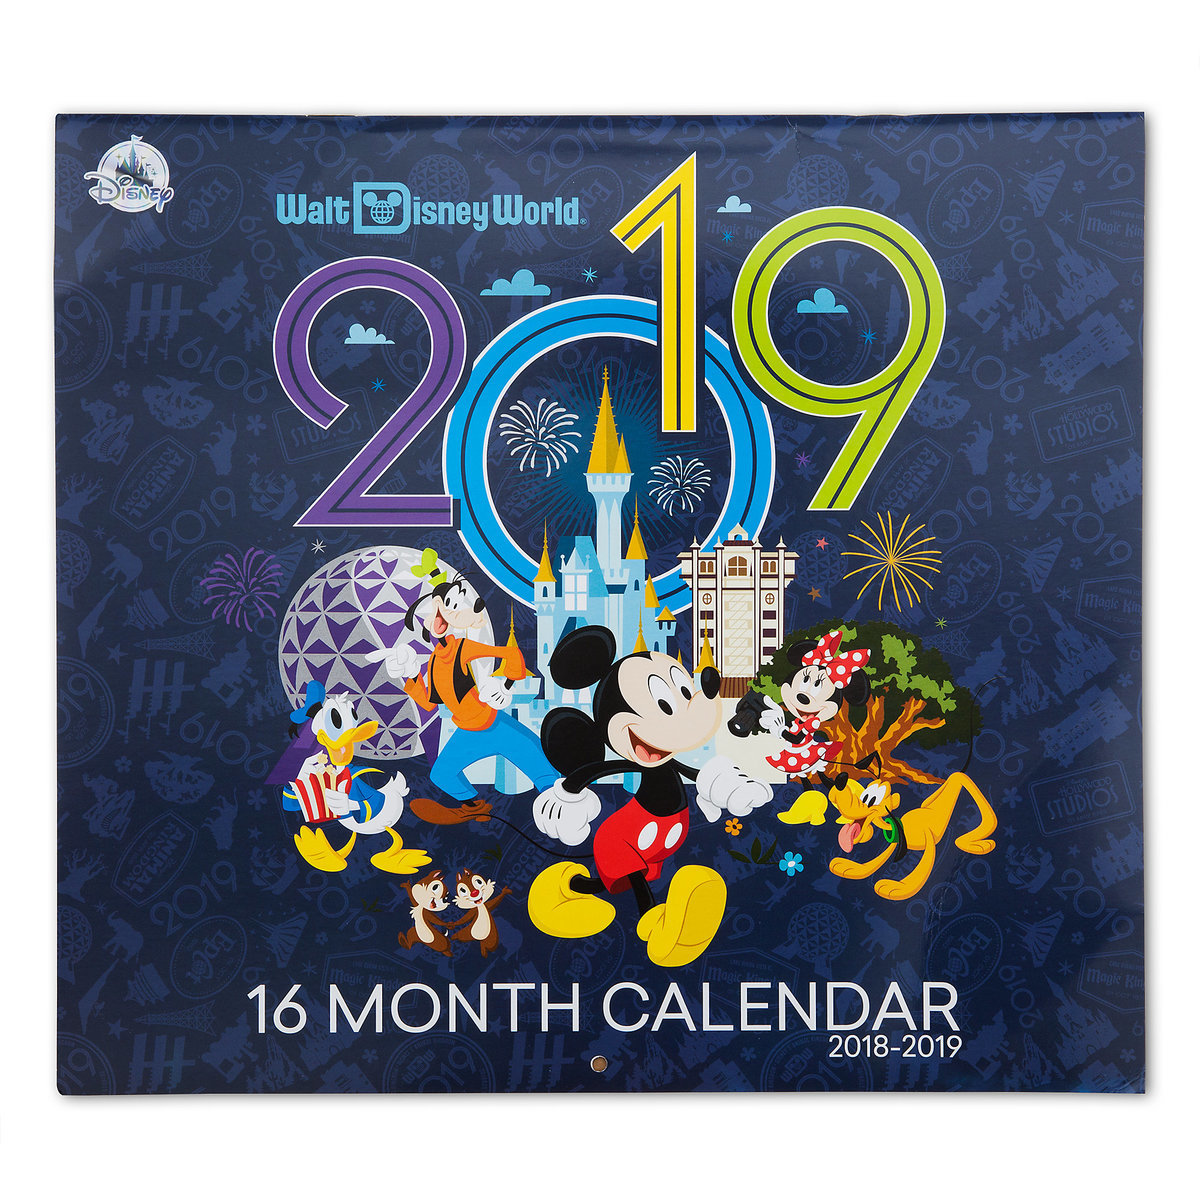 Walt Disney World 16 Month Calendar 2018-2019